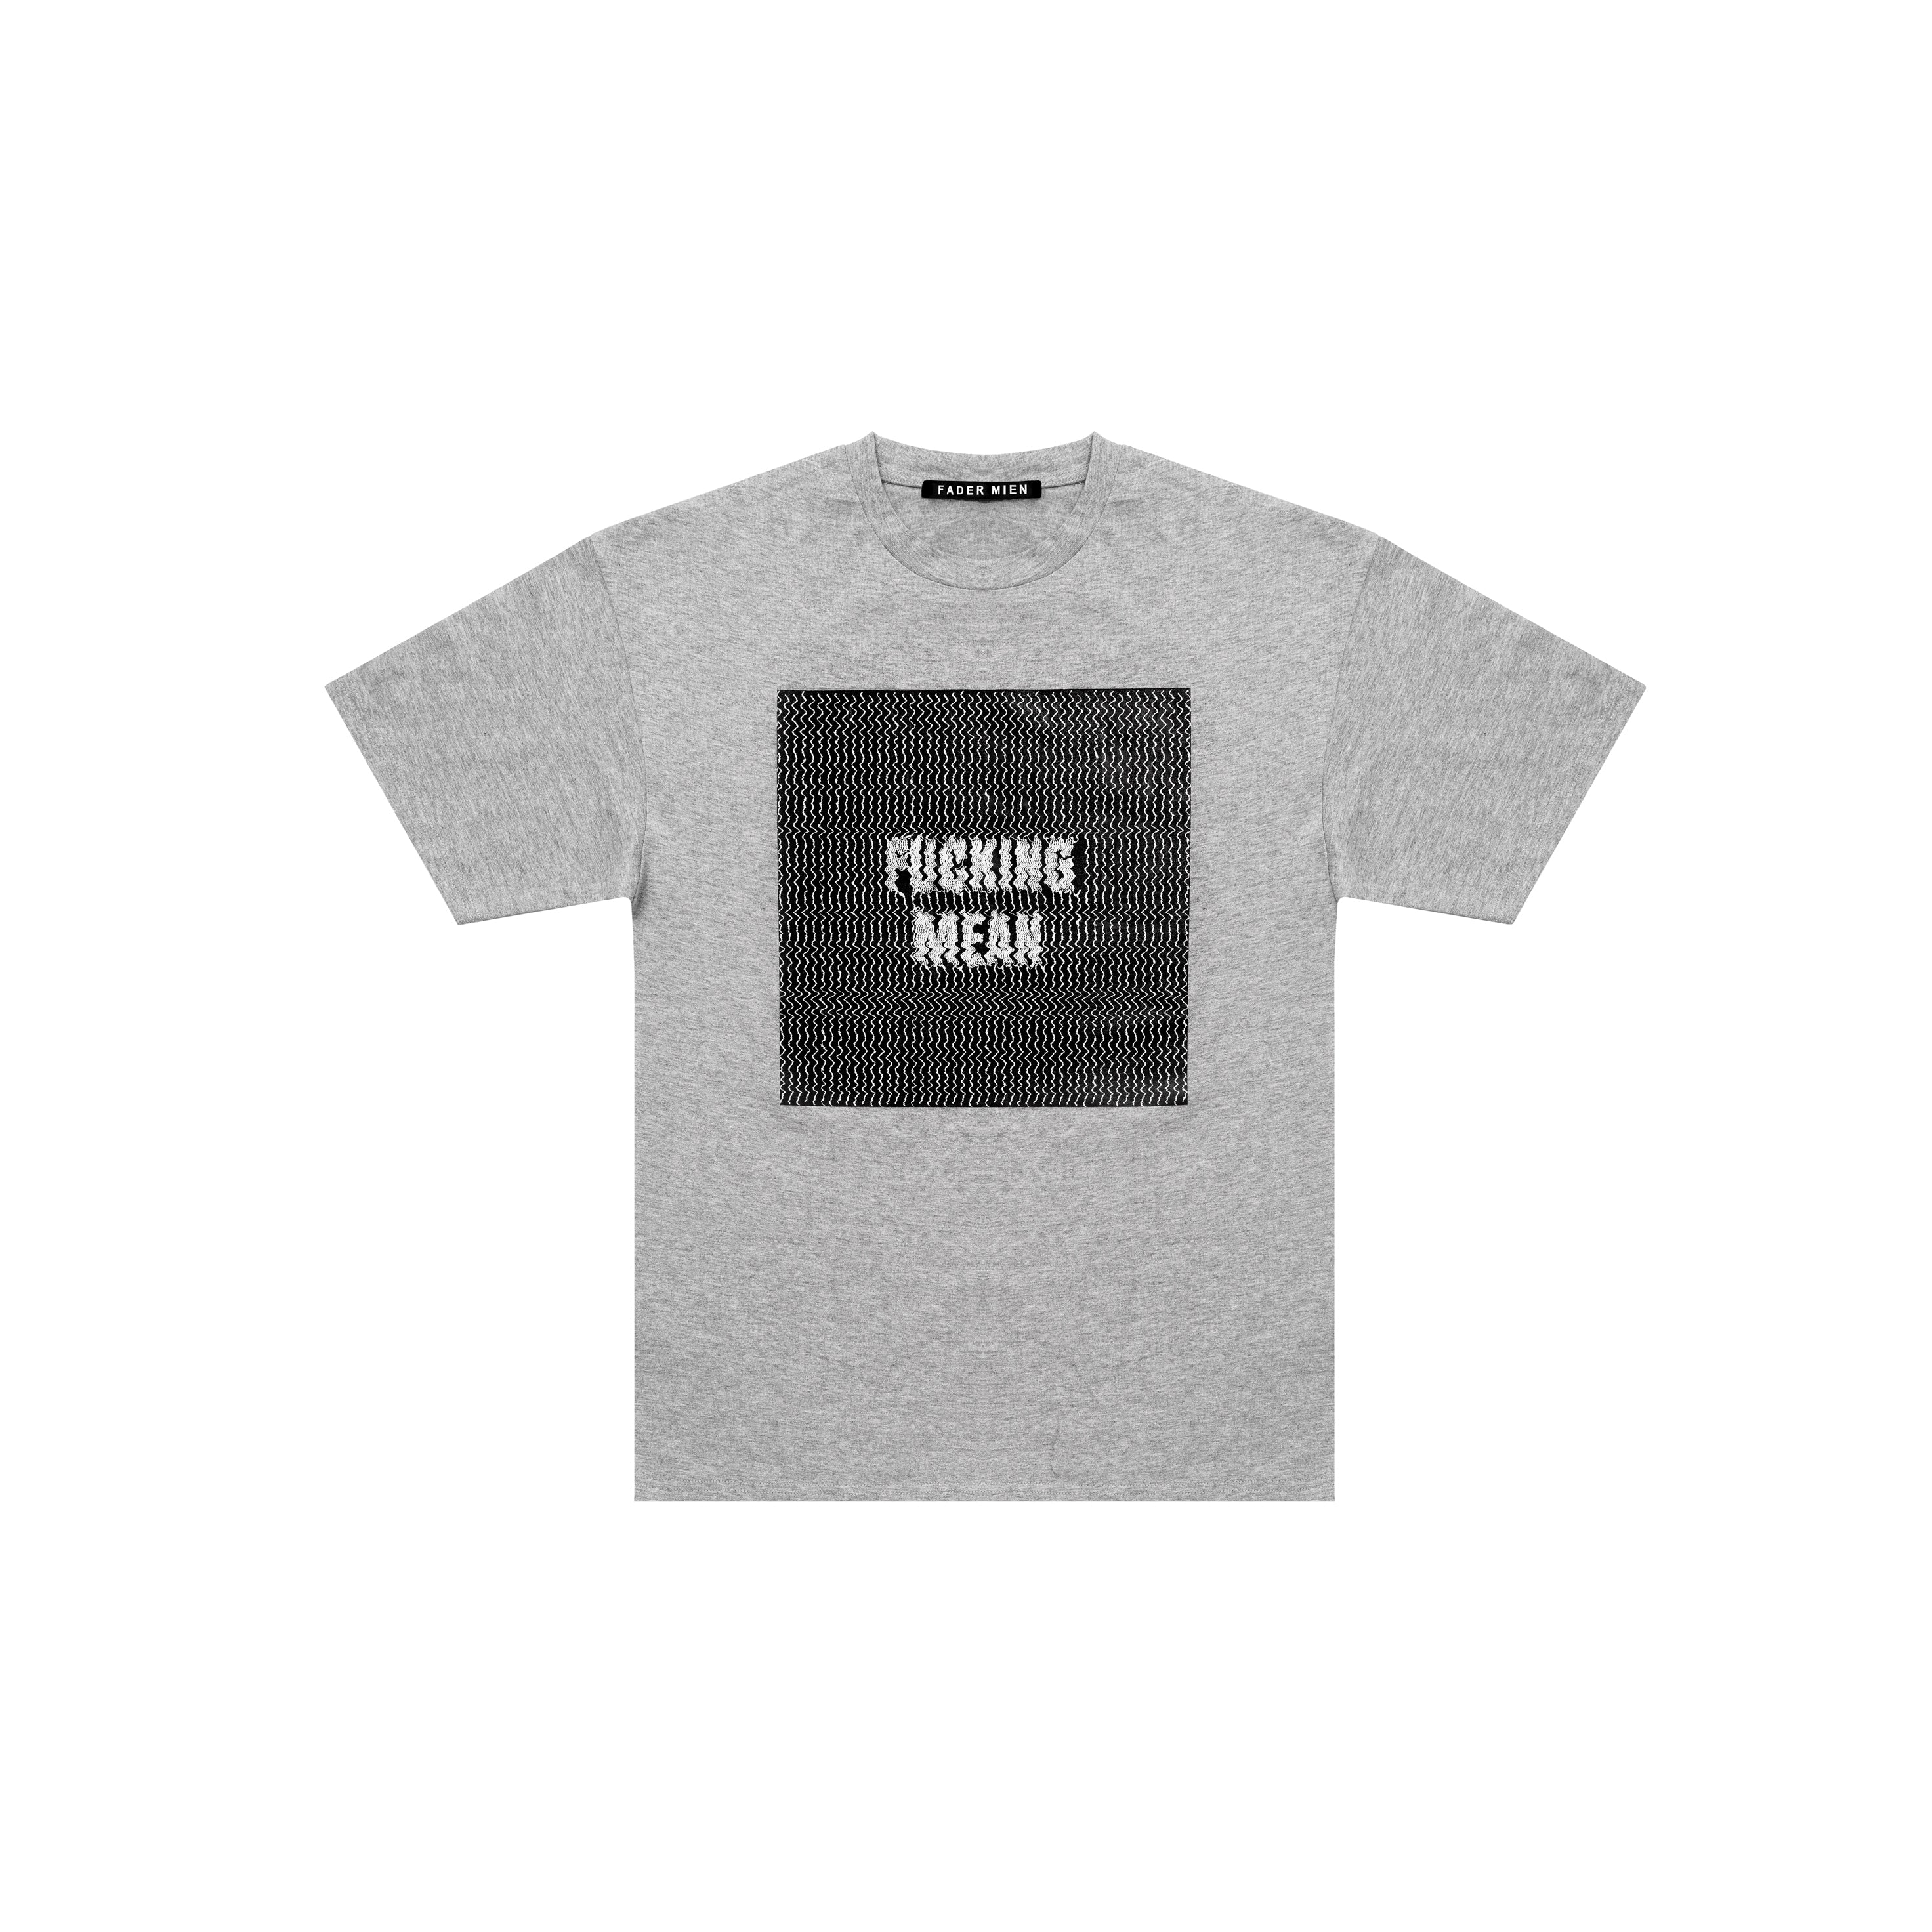 Grey Analog Print T-Shirt